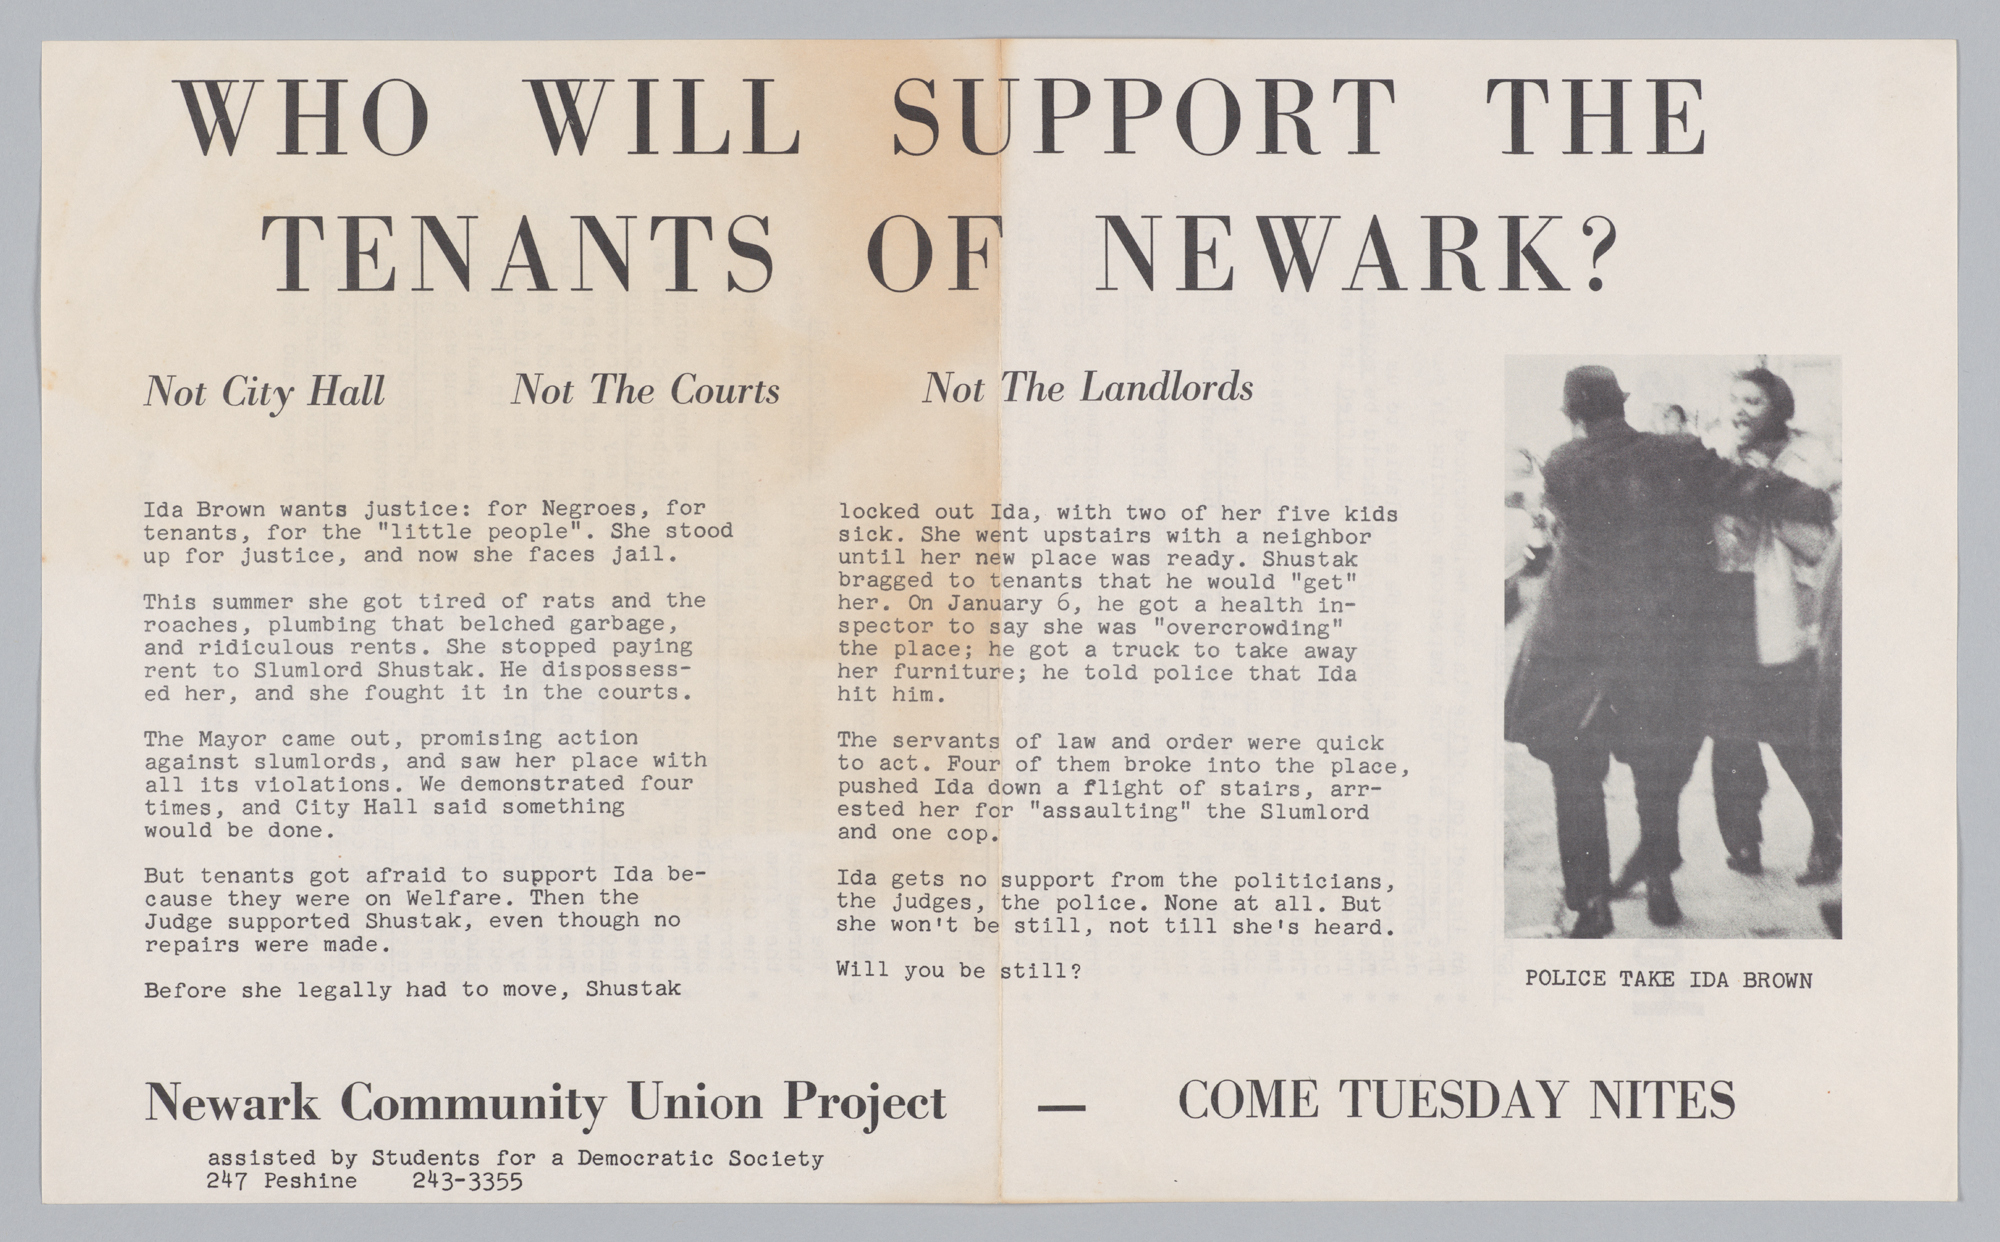 Who Will Support the Tenants of Newark?. Recto